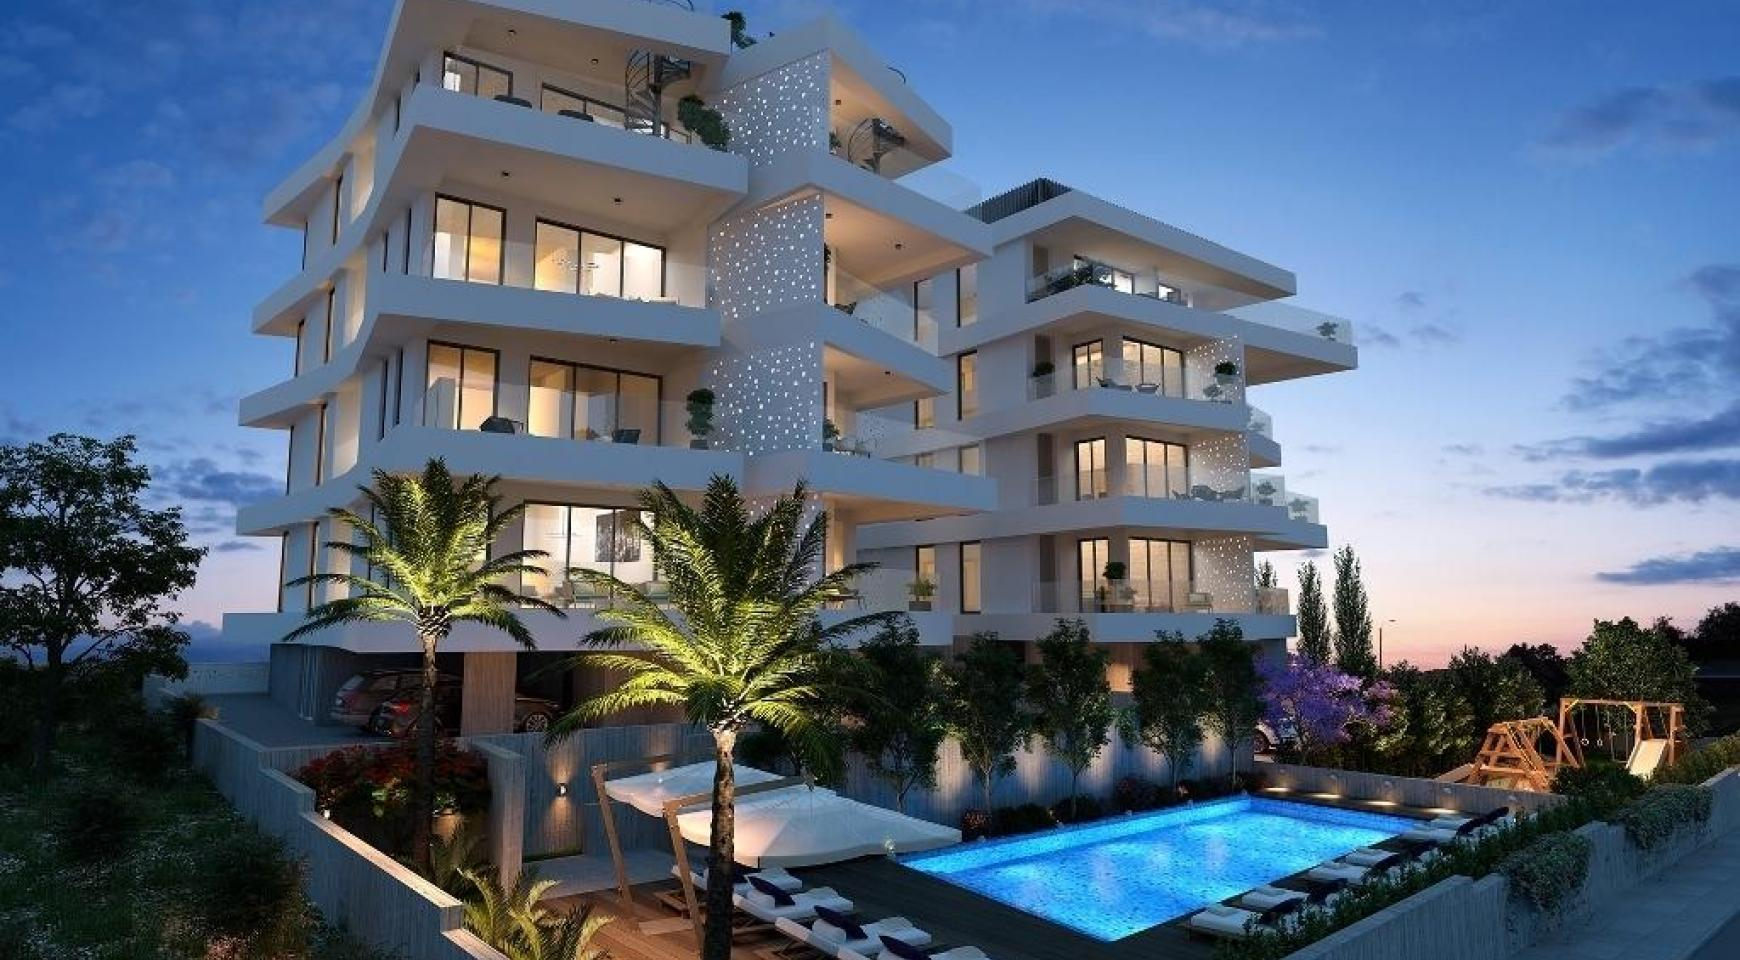 New 3 Bedroom Apartment in a Contemporary Building in Germasogeia - 1